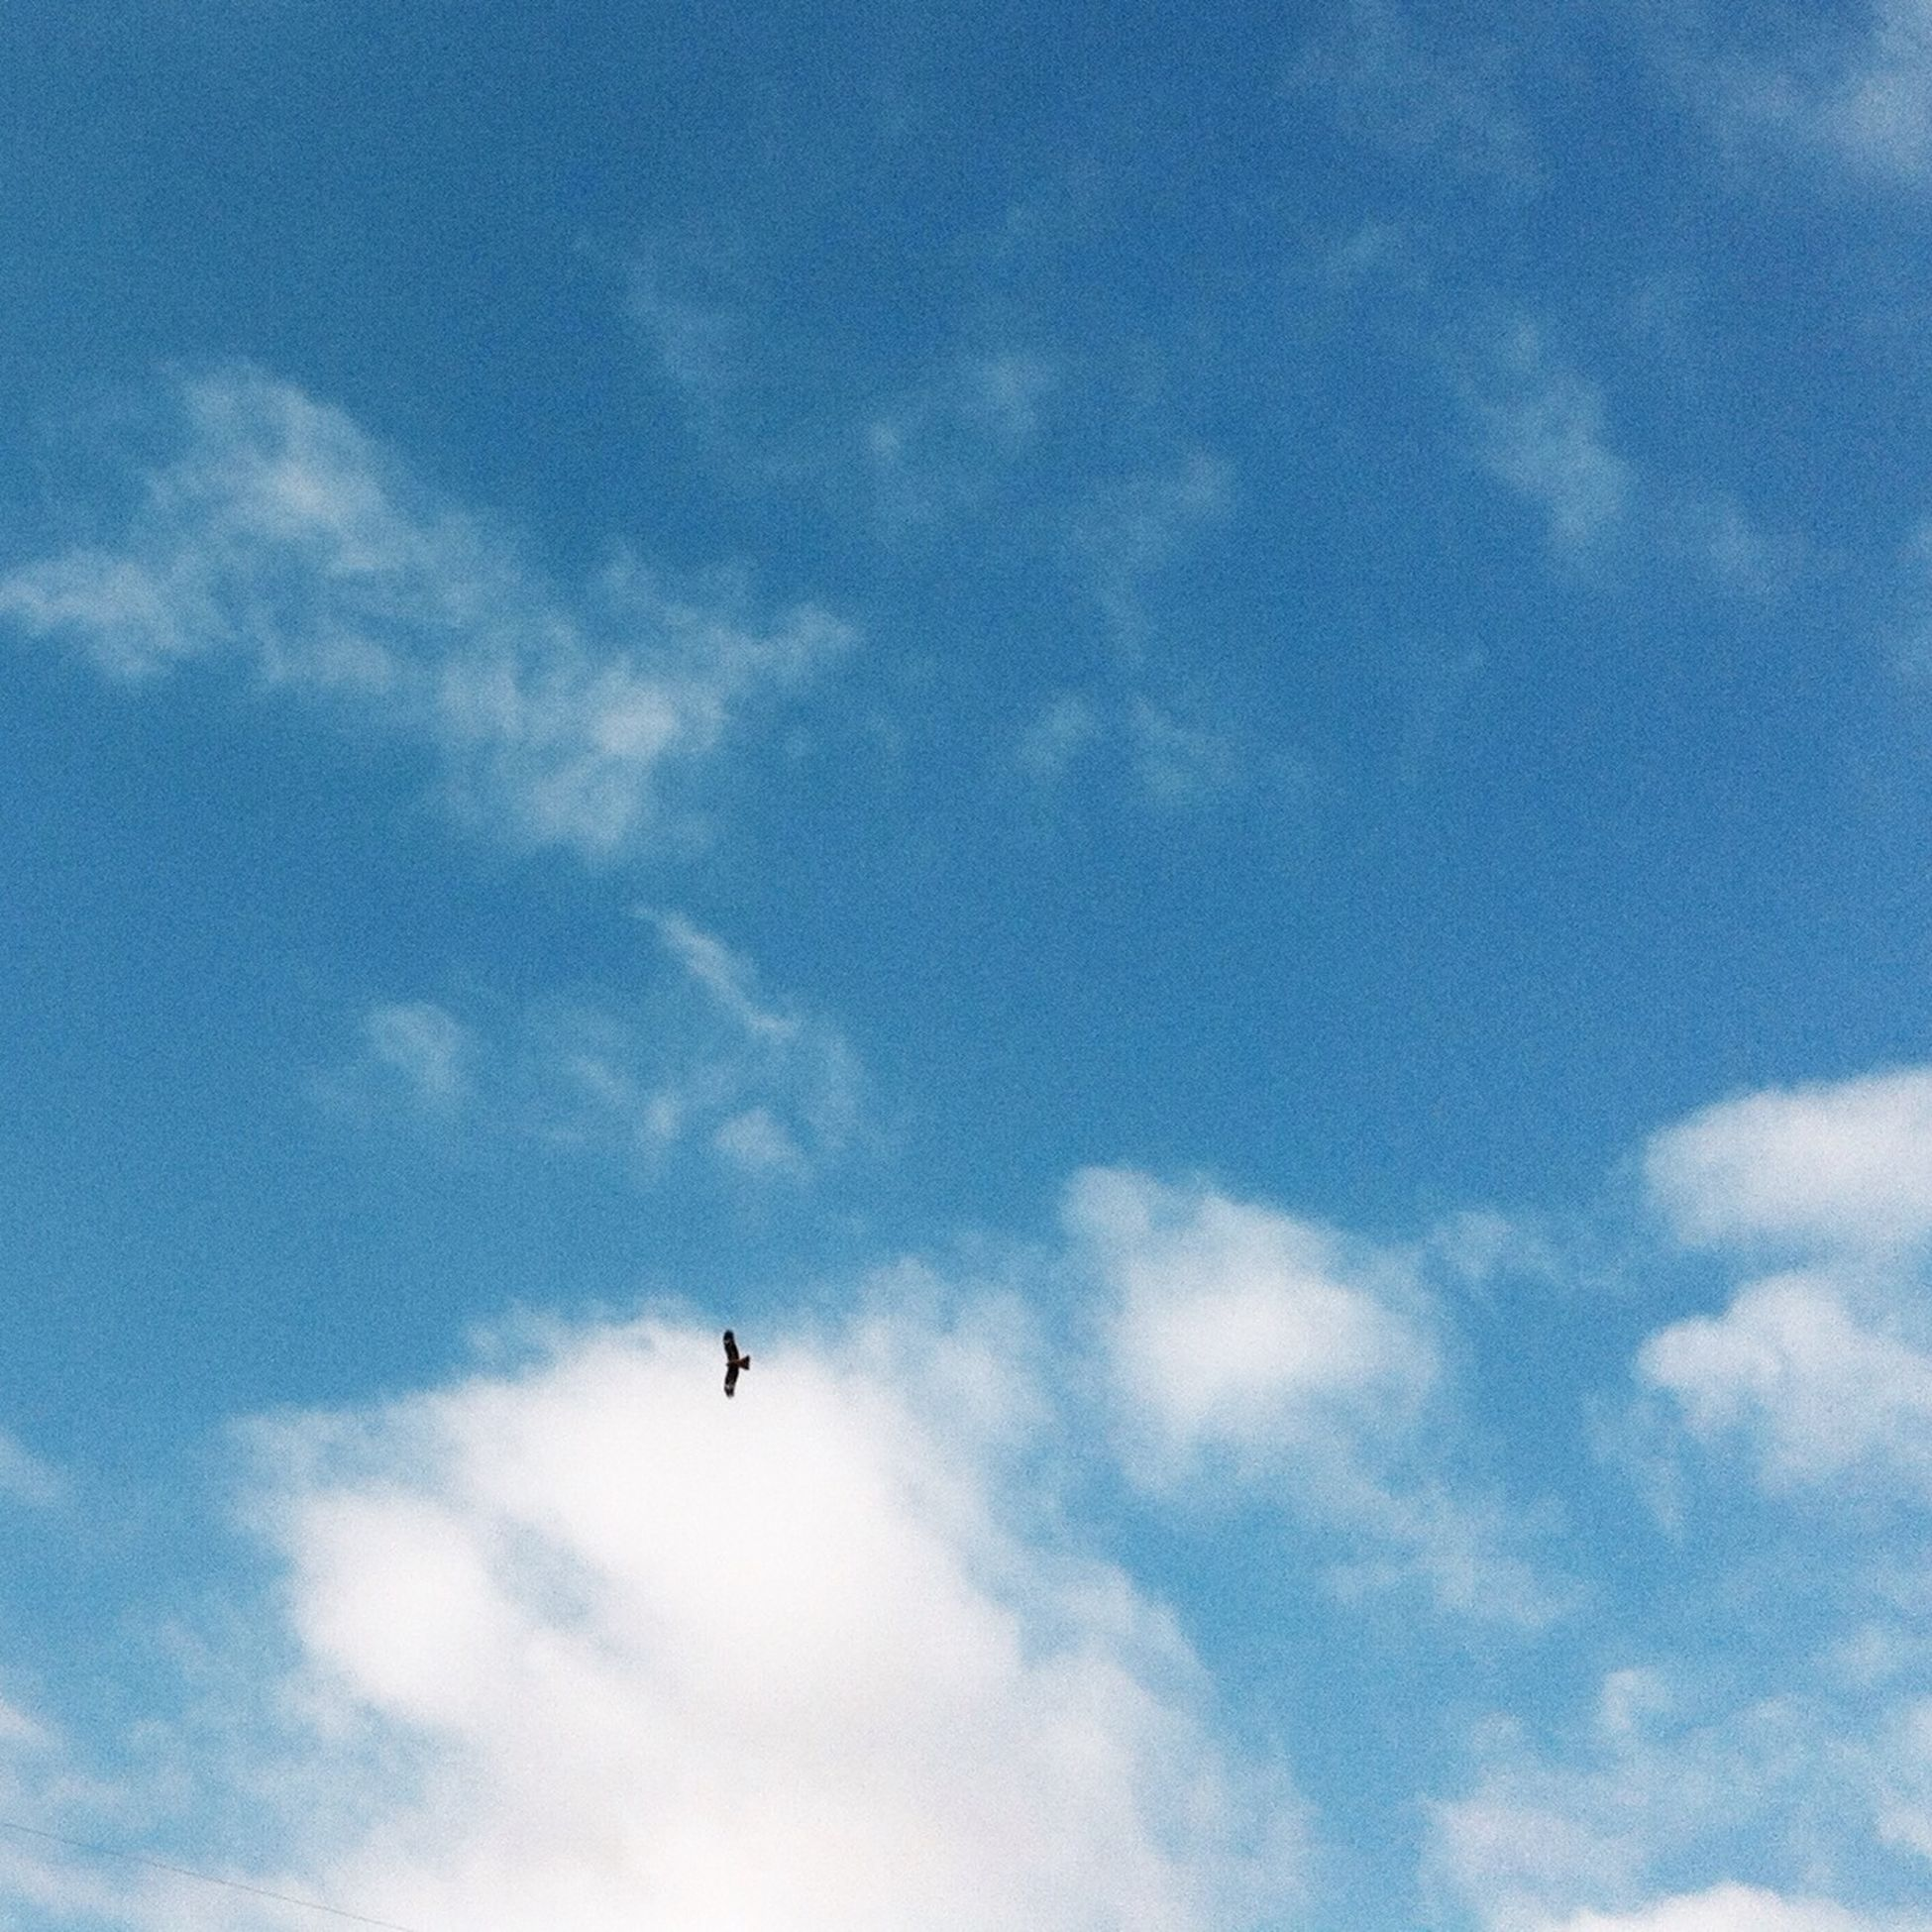 flying, low angle view, animal themes, bird, animals in the wild, sky, wildlife, mid-air, cloud - sky, one animal, blue, spread wings, nature, beauty in nature, cloud, silhouette, cloudy, outdoors, on the move, tranquility